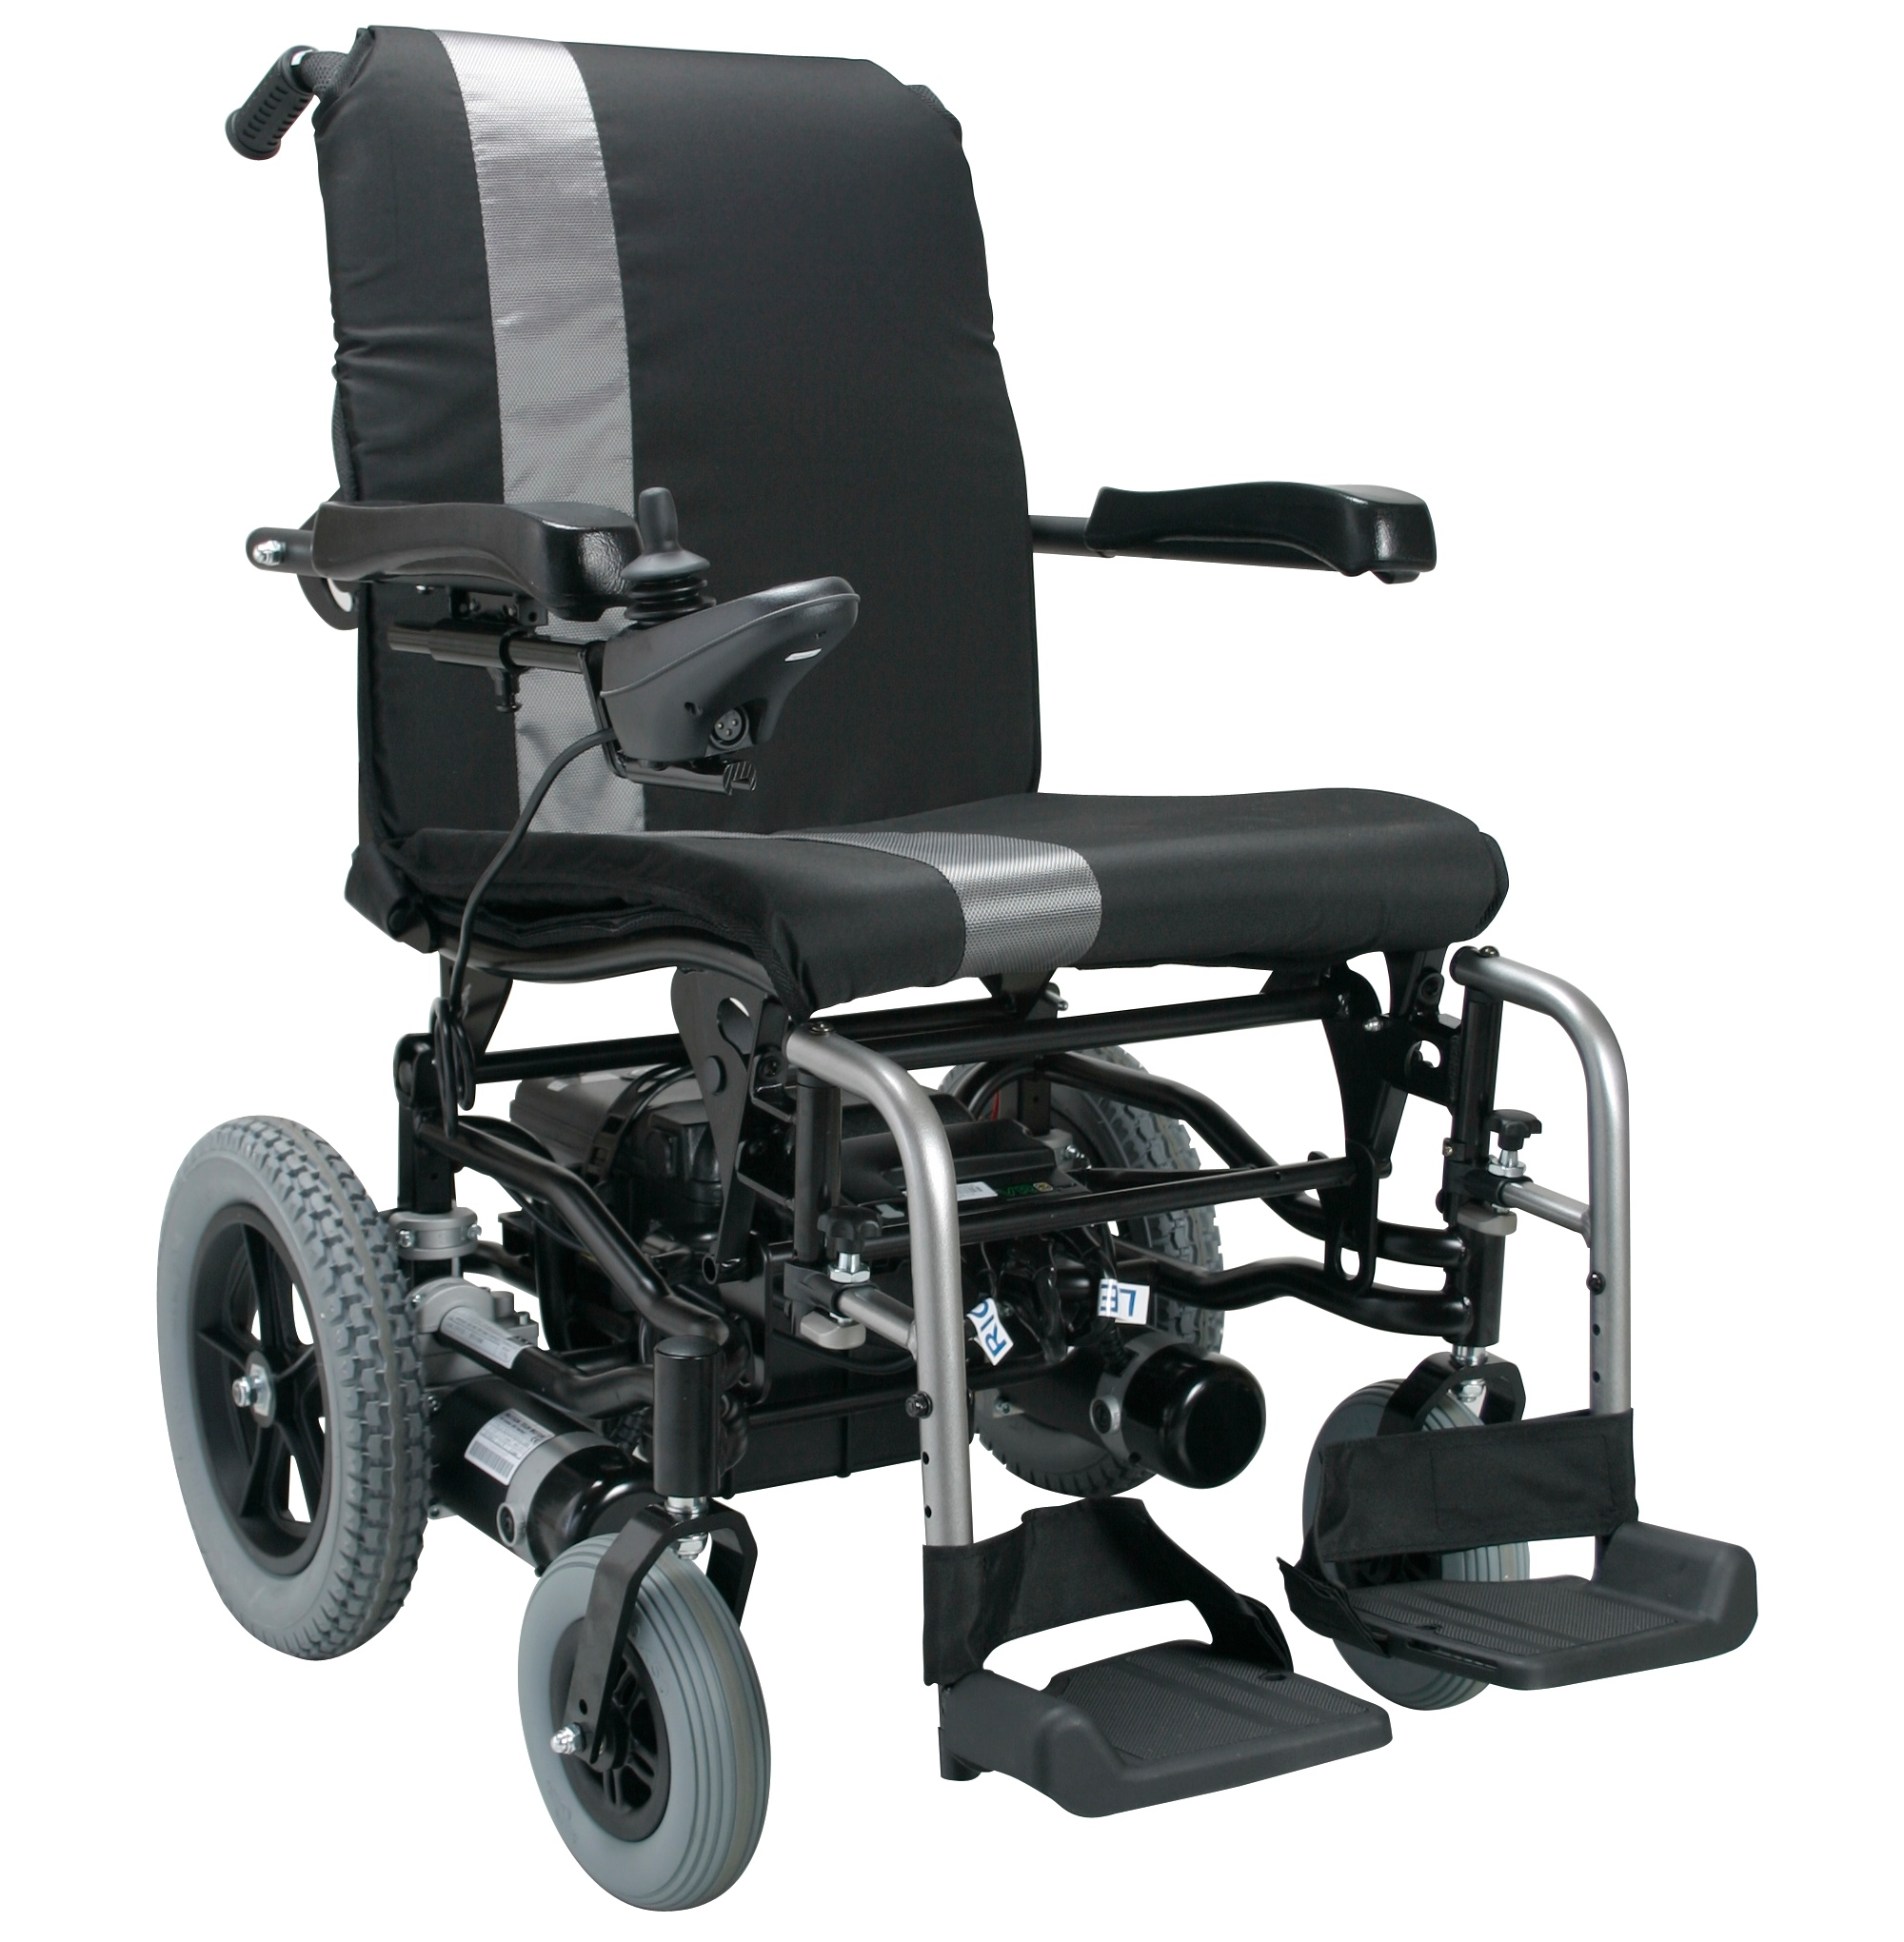 Traveller power chair